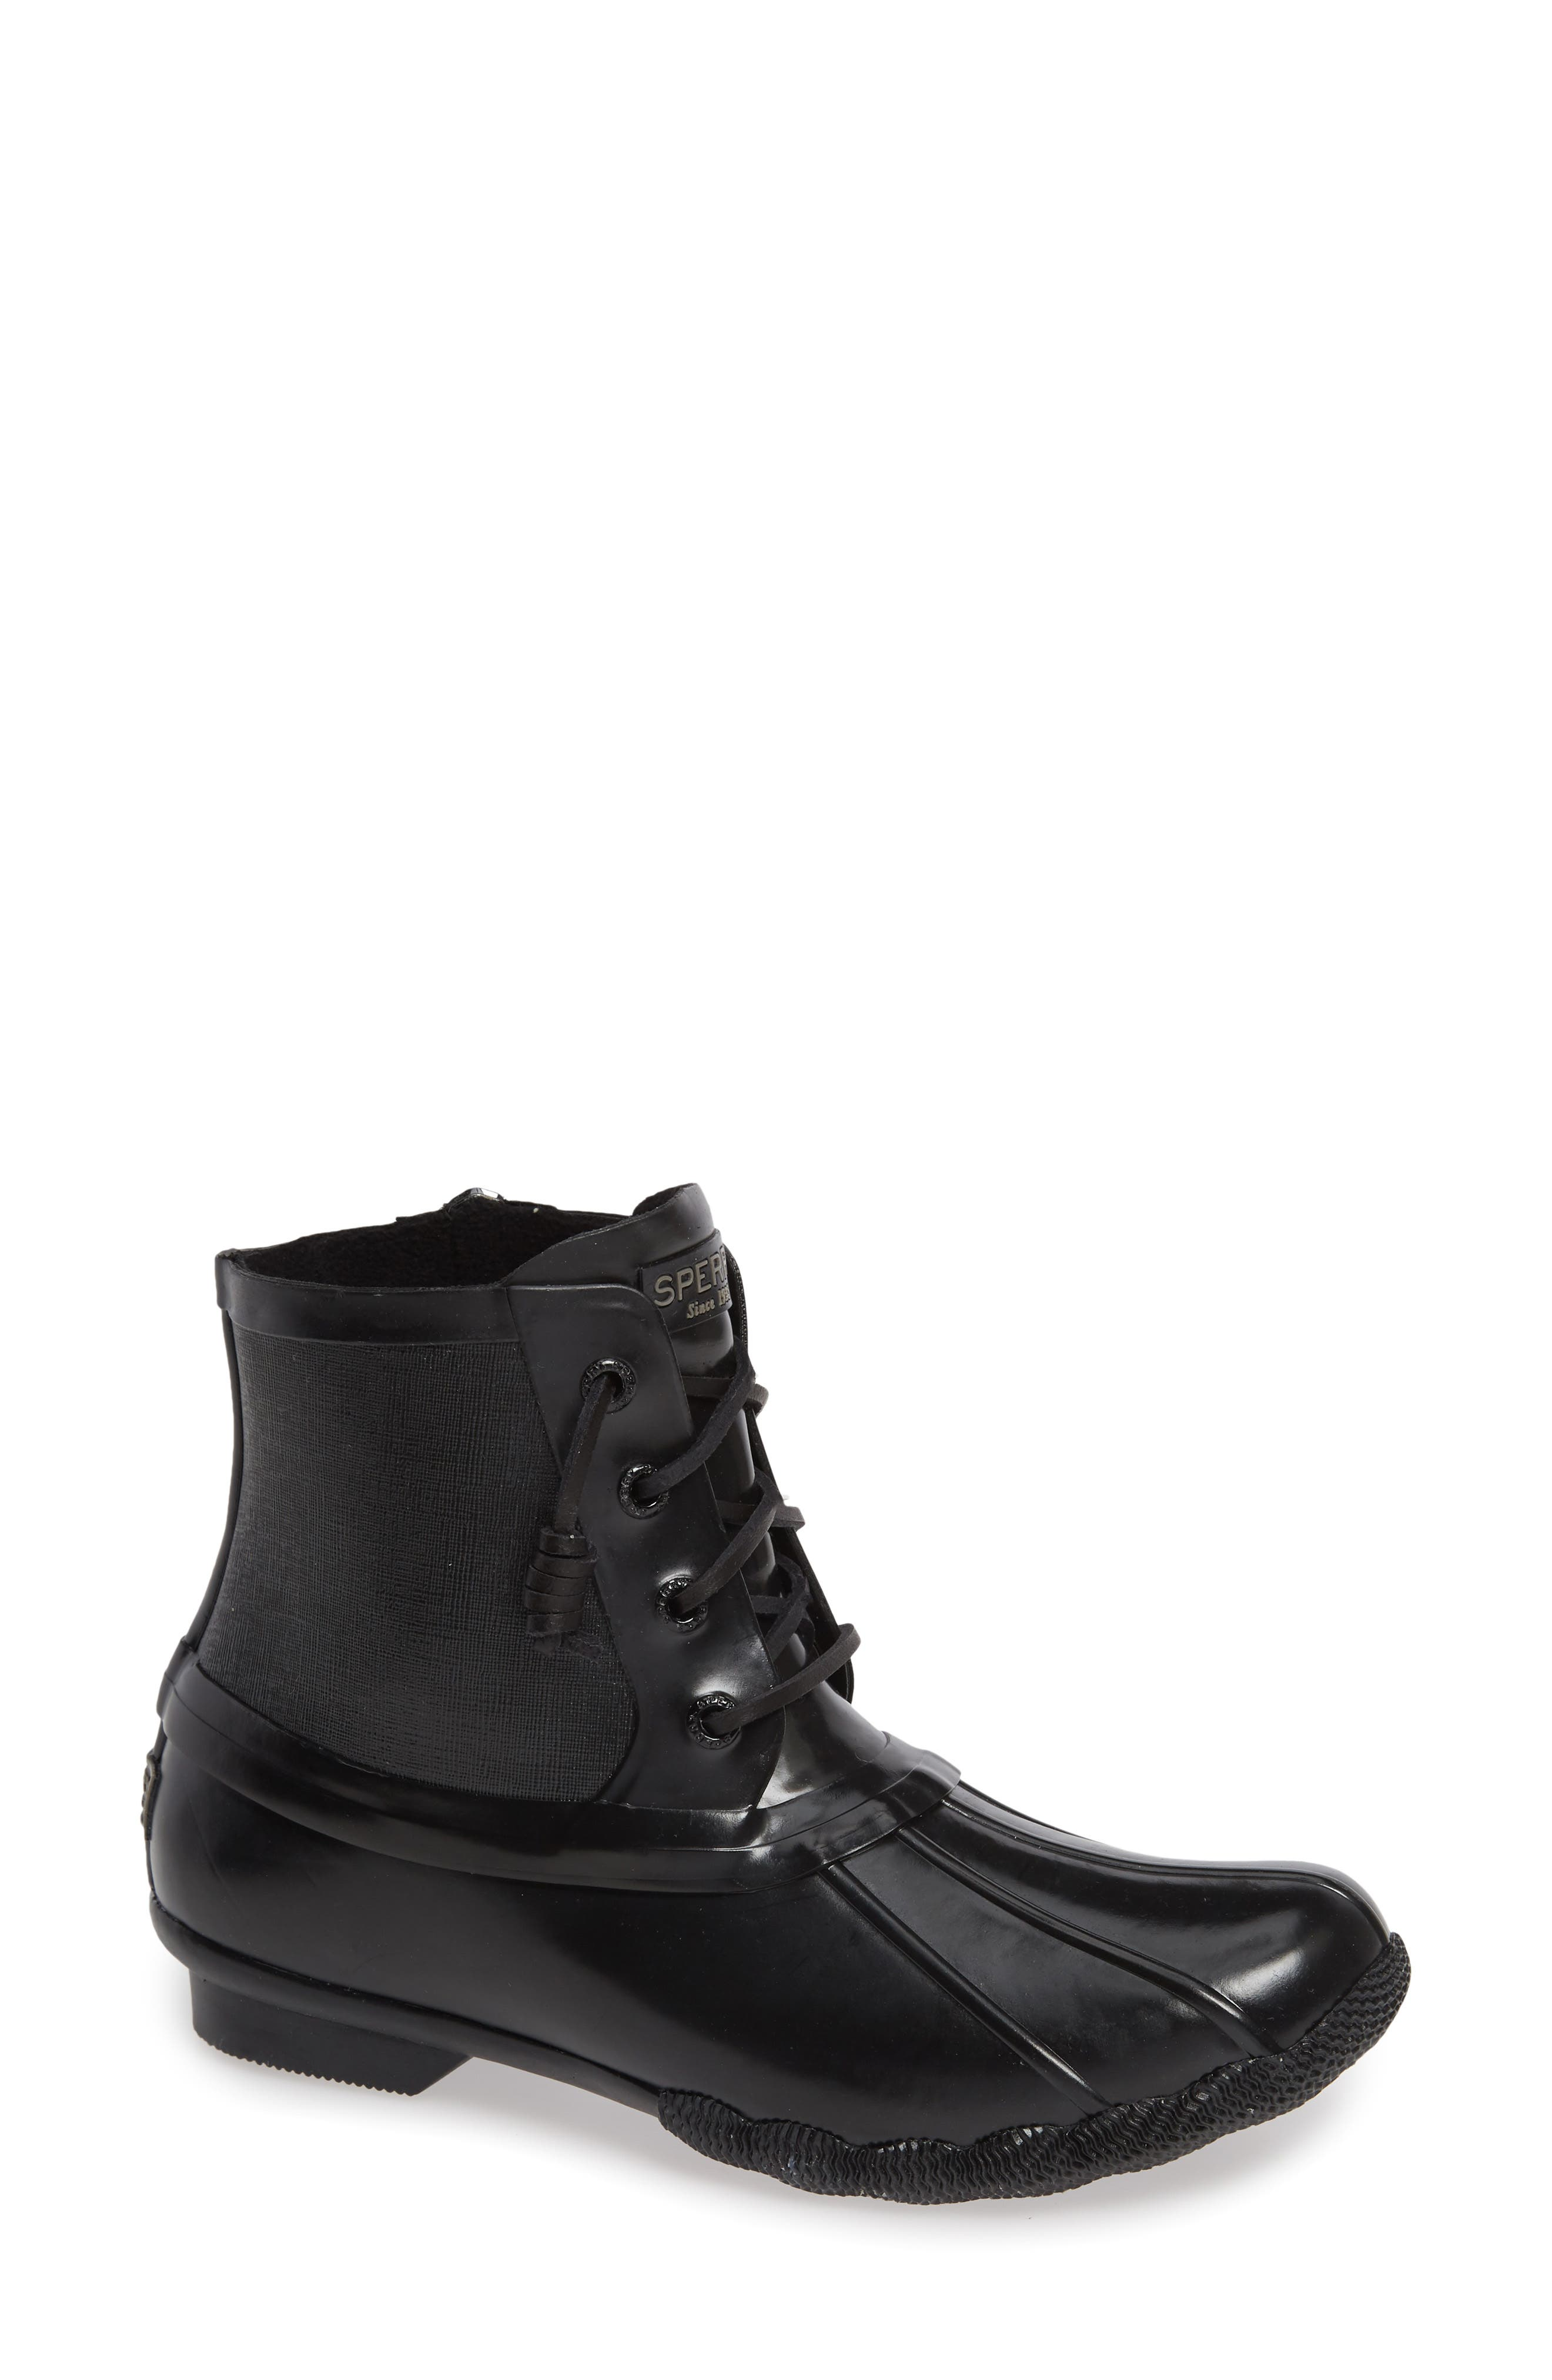 Sperry Flooded Rubber Saltwater Bootie- Black